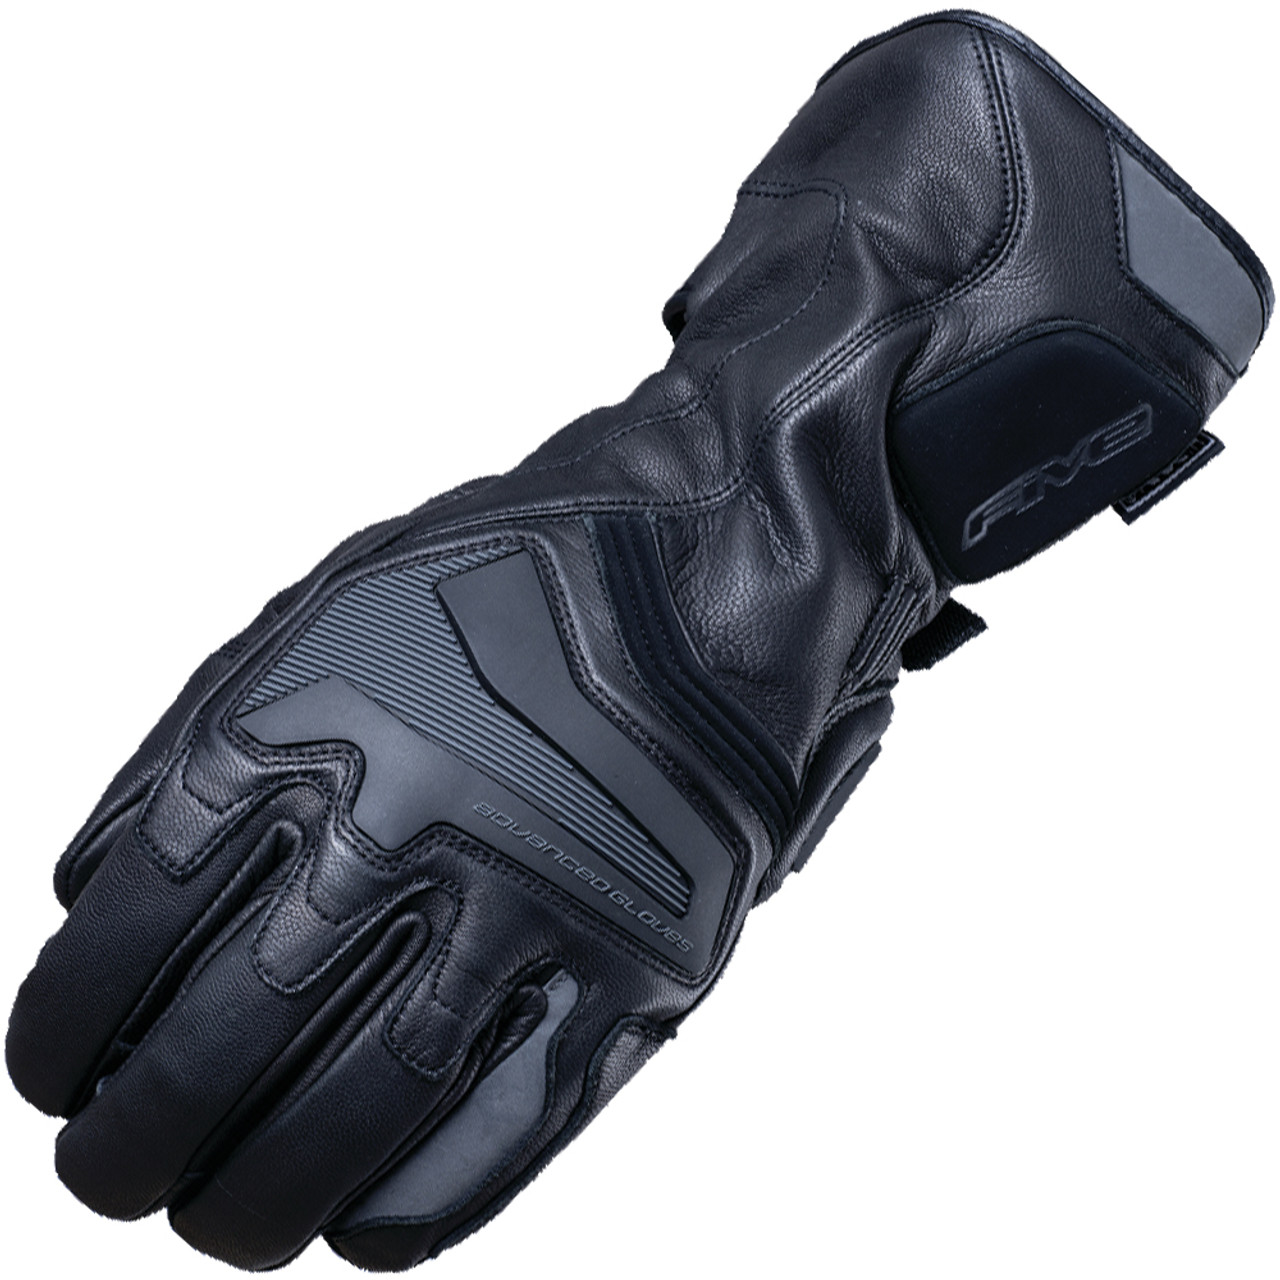 Black Five Gloves WFX City Waterproof Winter Touring Motorcycle Gloves